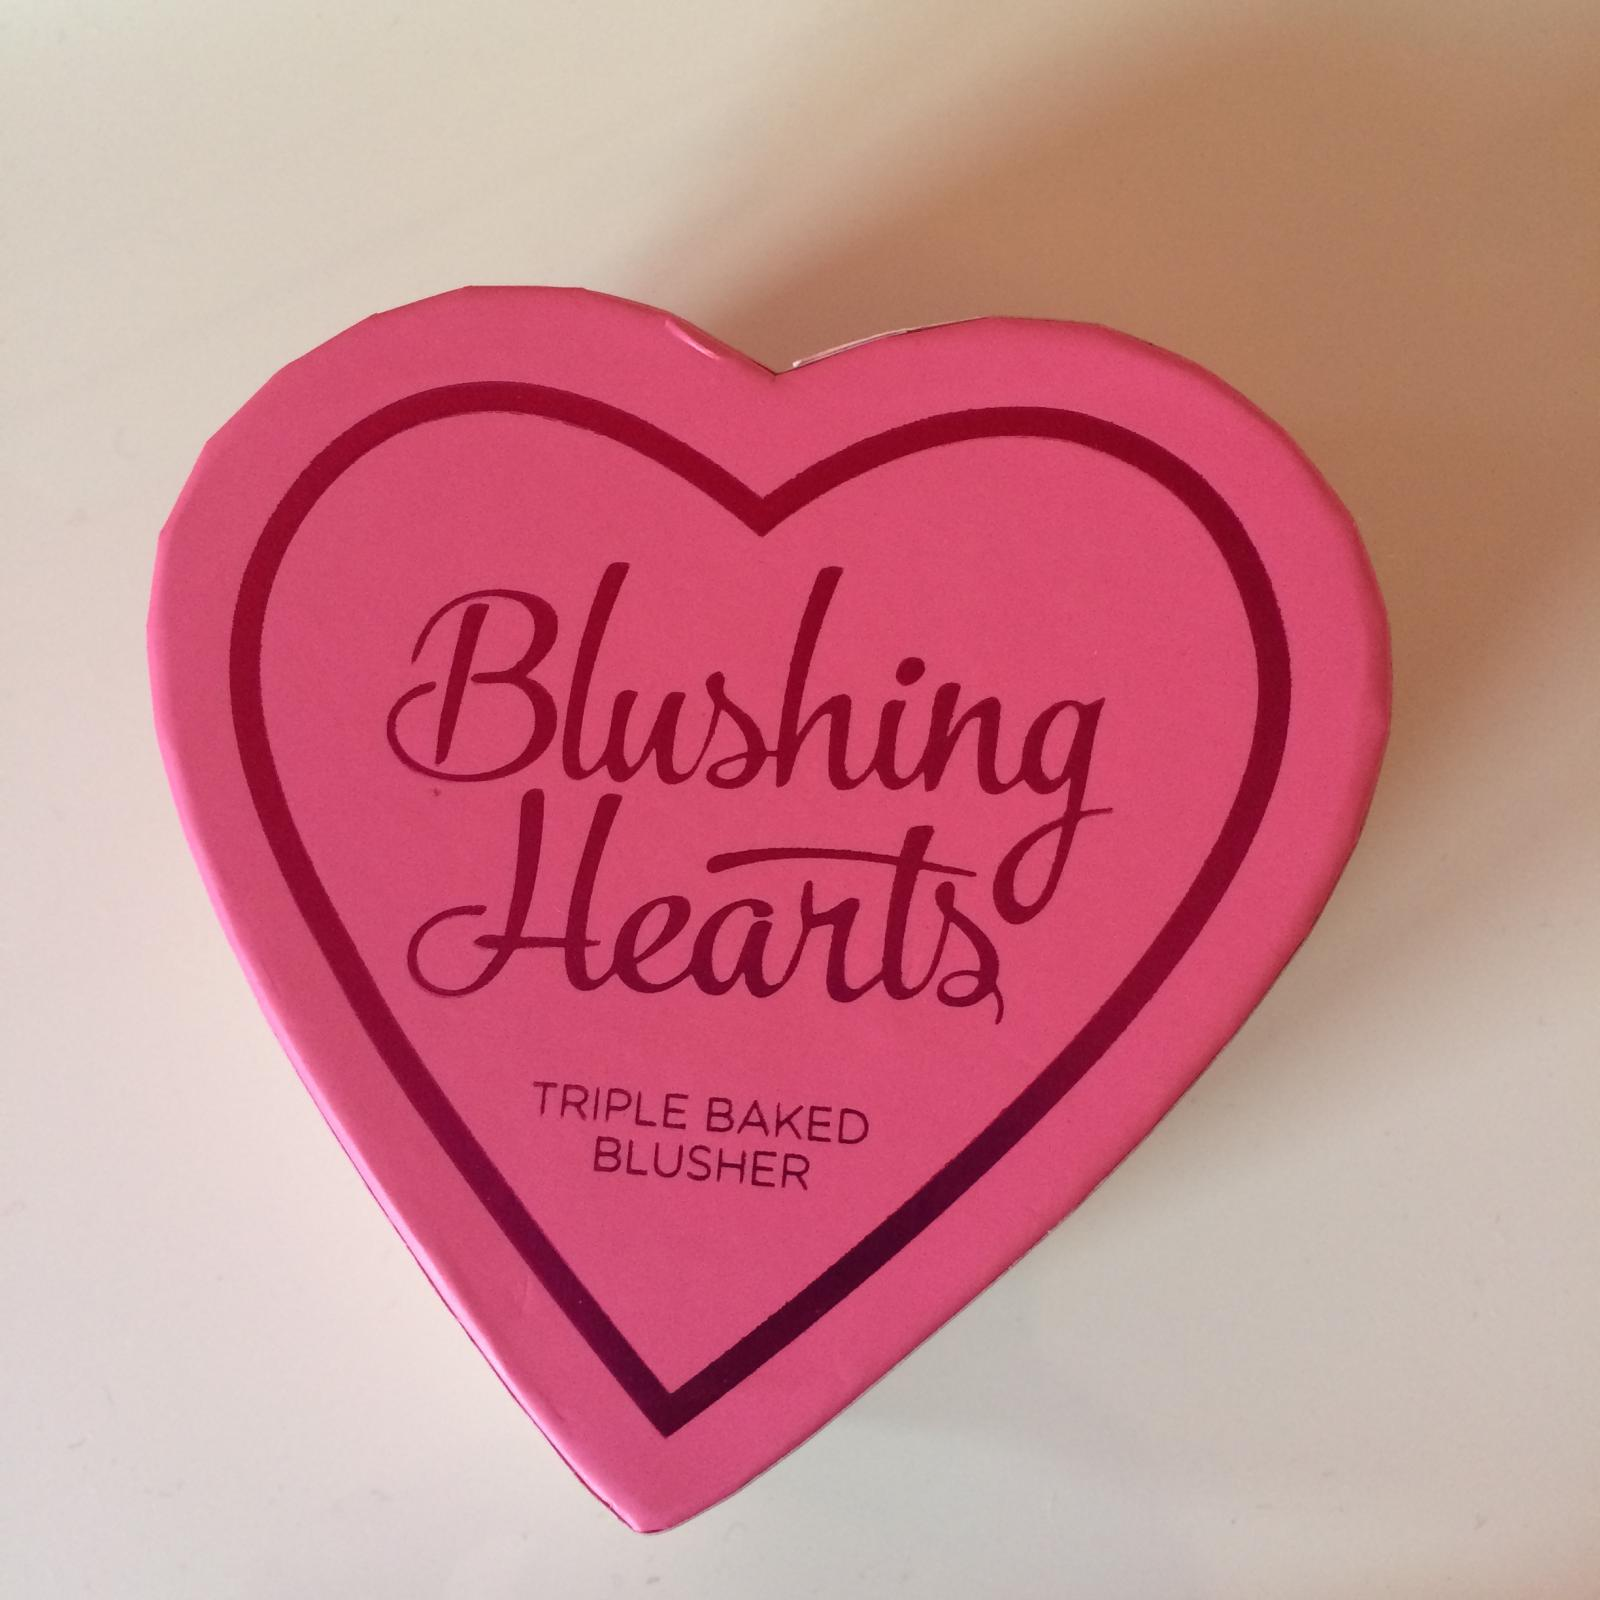 Blushing Hearts Baked Blusher Peachy Keen